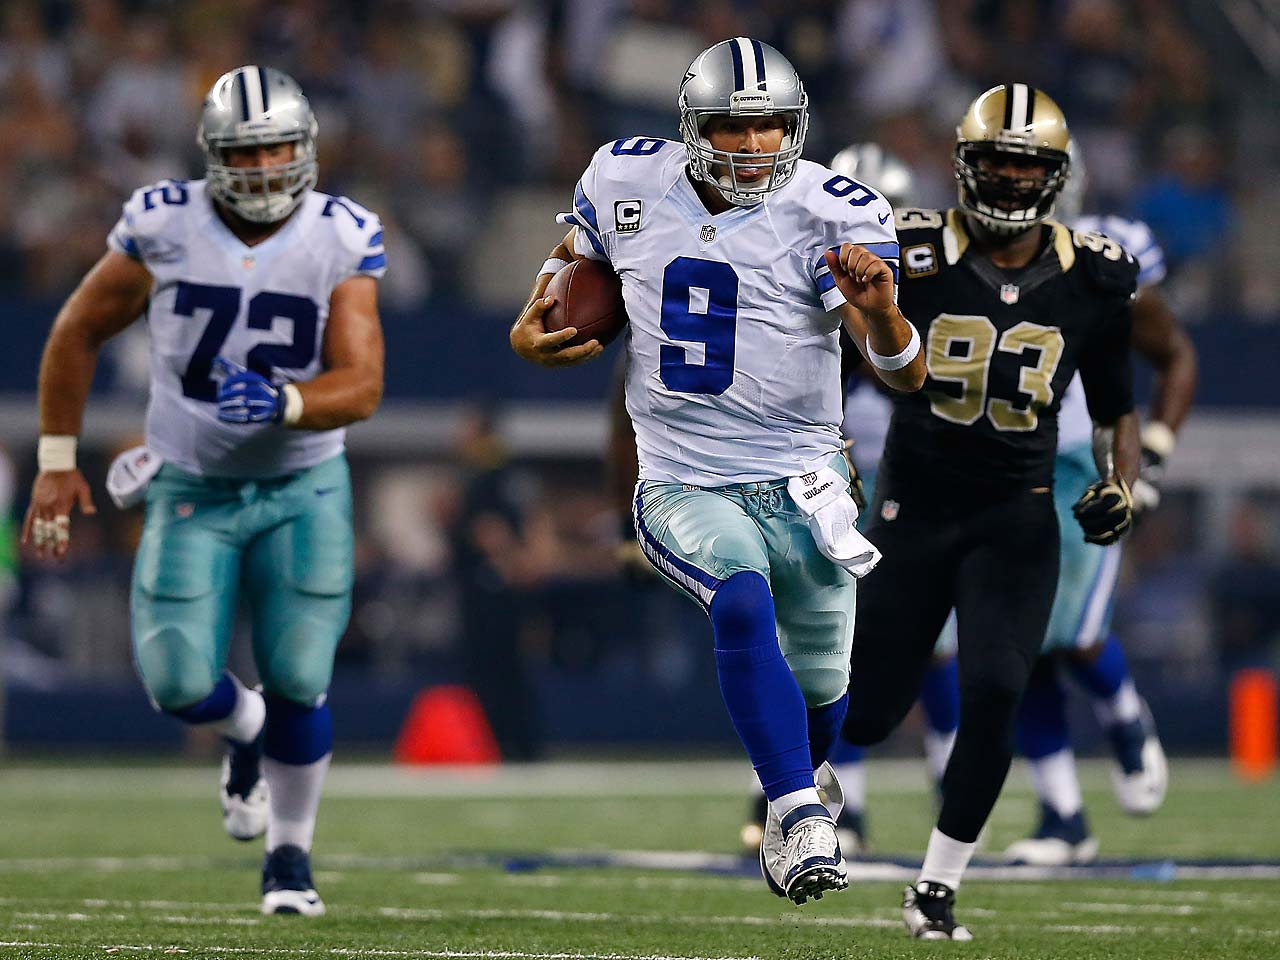 Tony Romo had the longest run of his career against the Saints, scrambling for 21 yards.